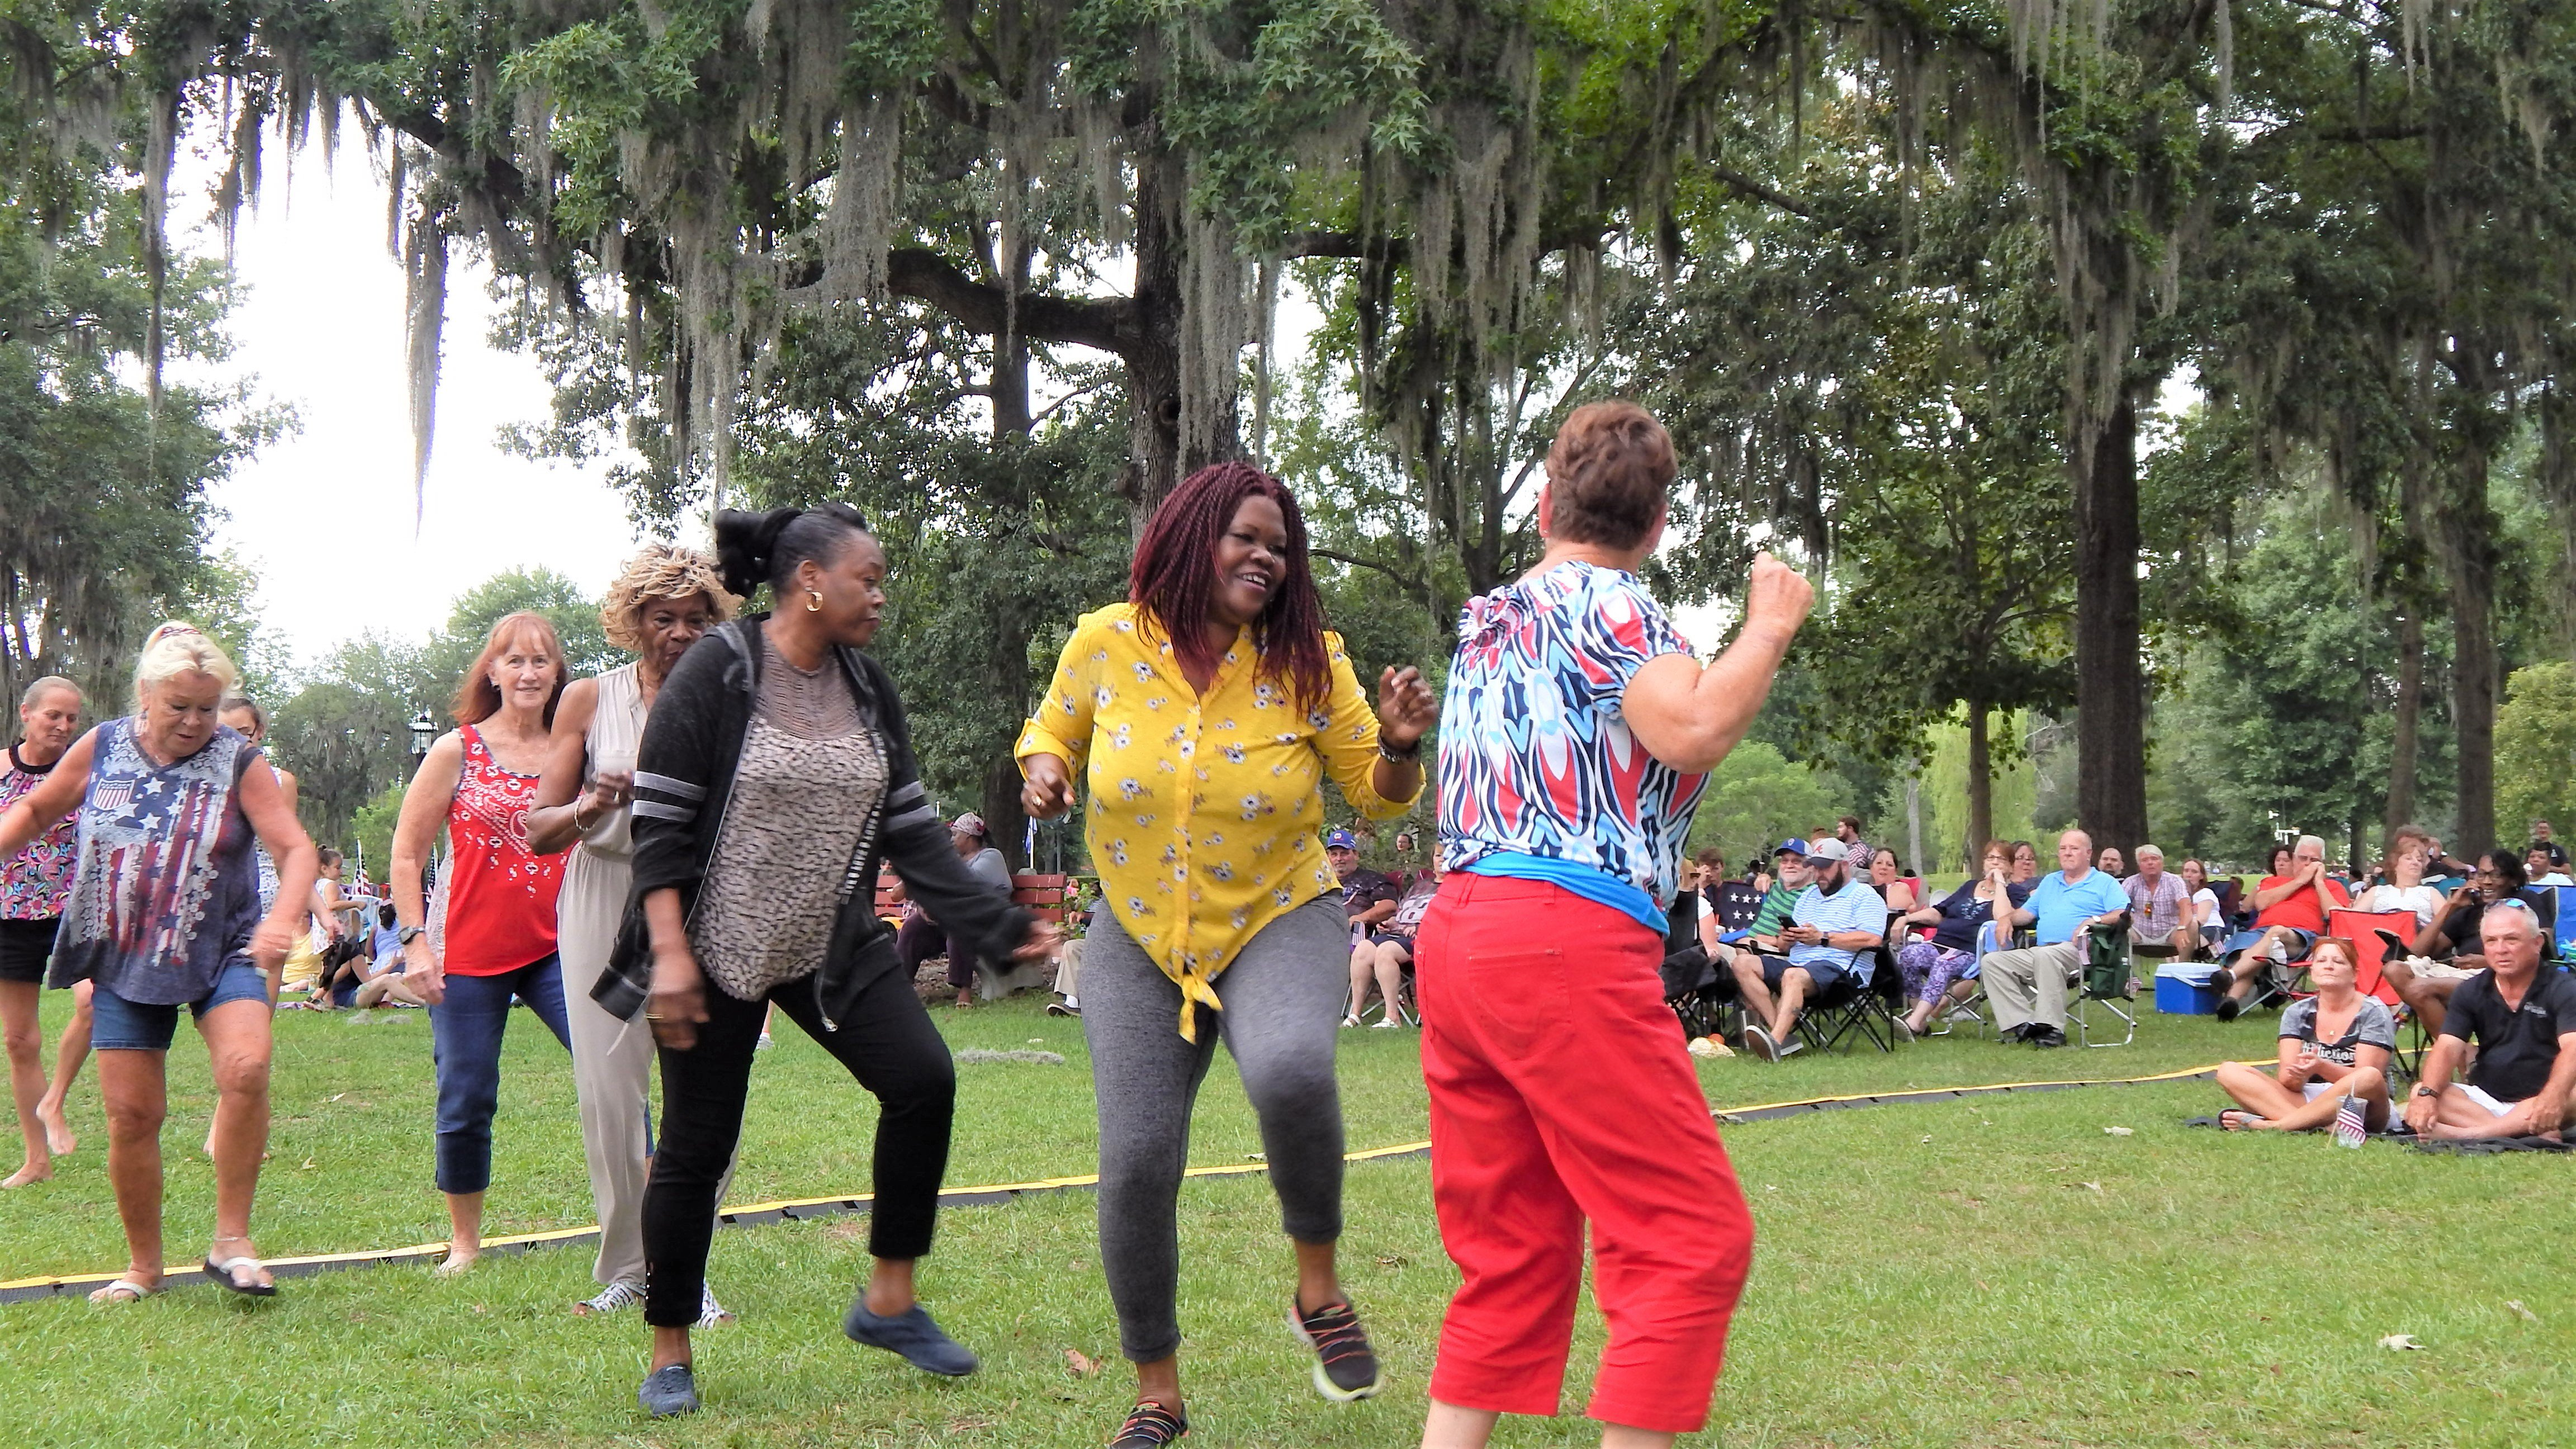 These ladies had a great time dancing to the music of the Tams and their backup band. Photo by Mark Swendra